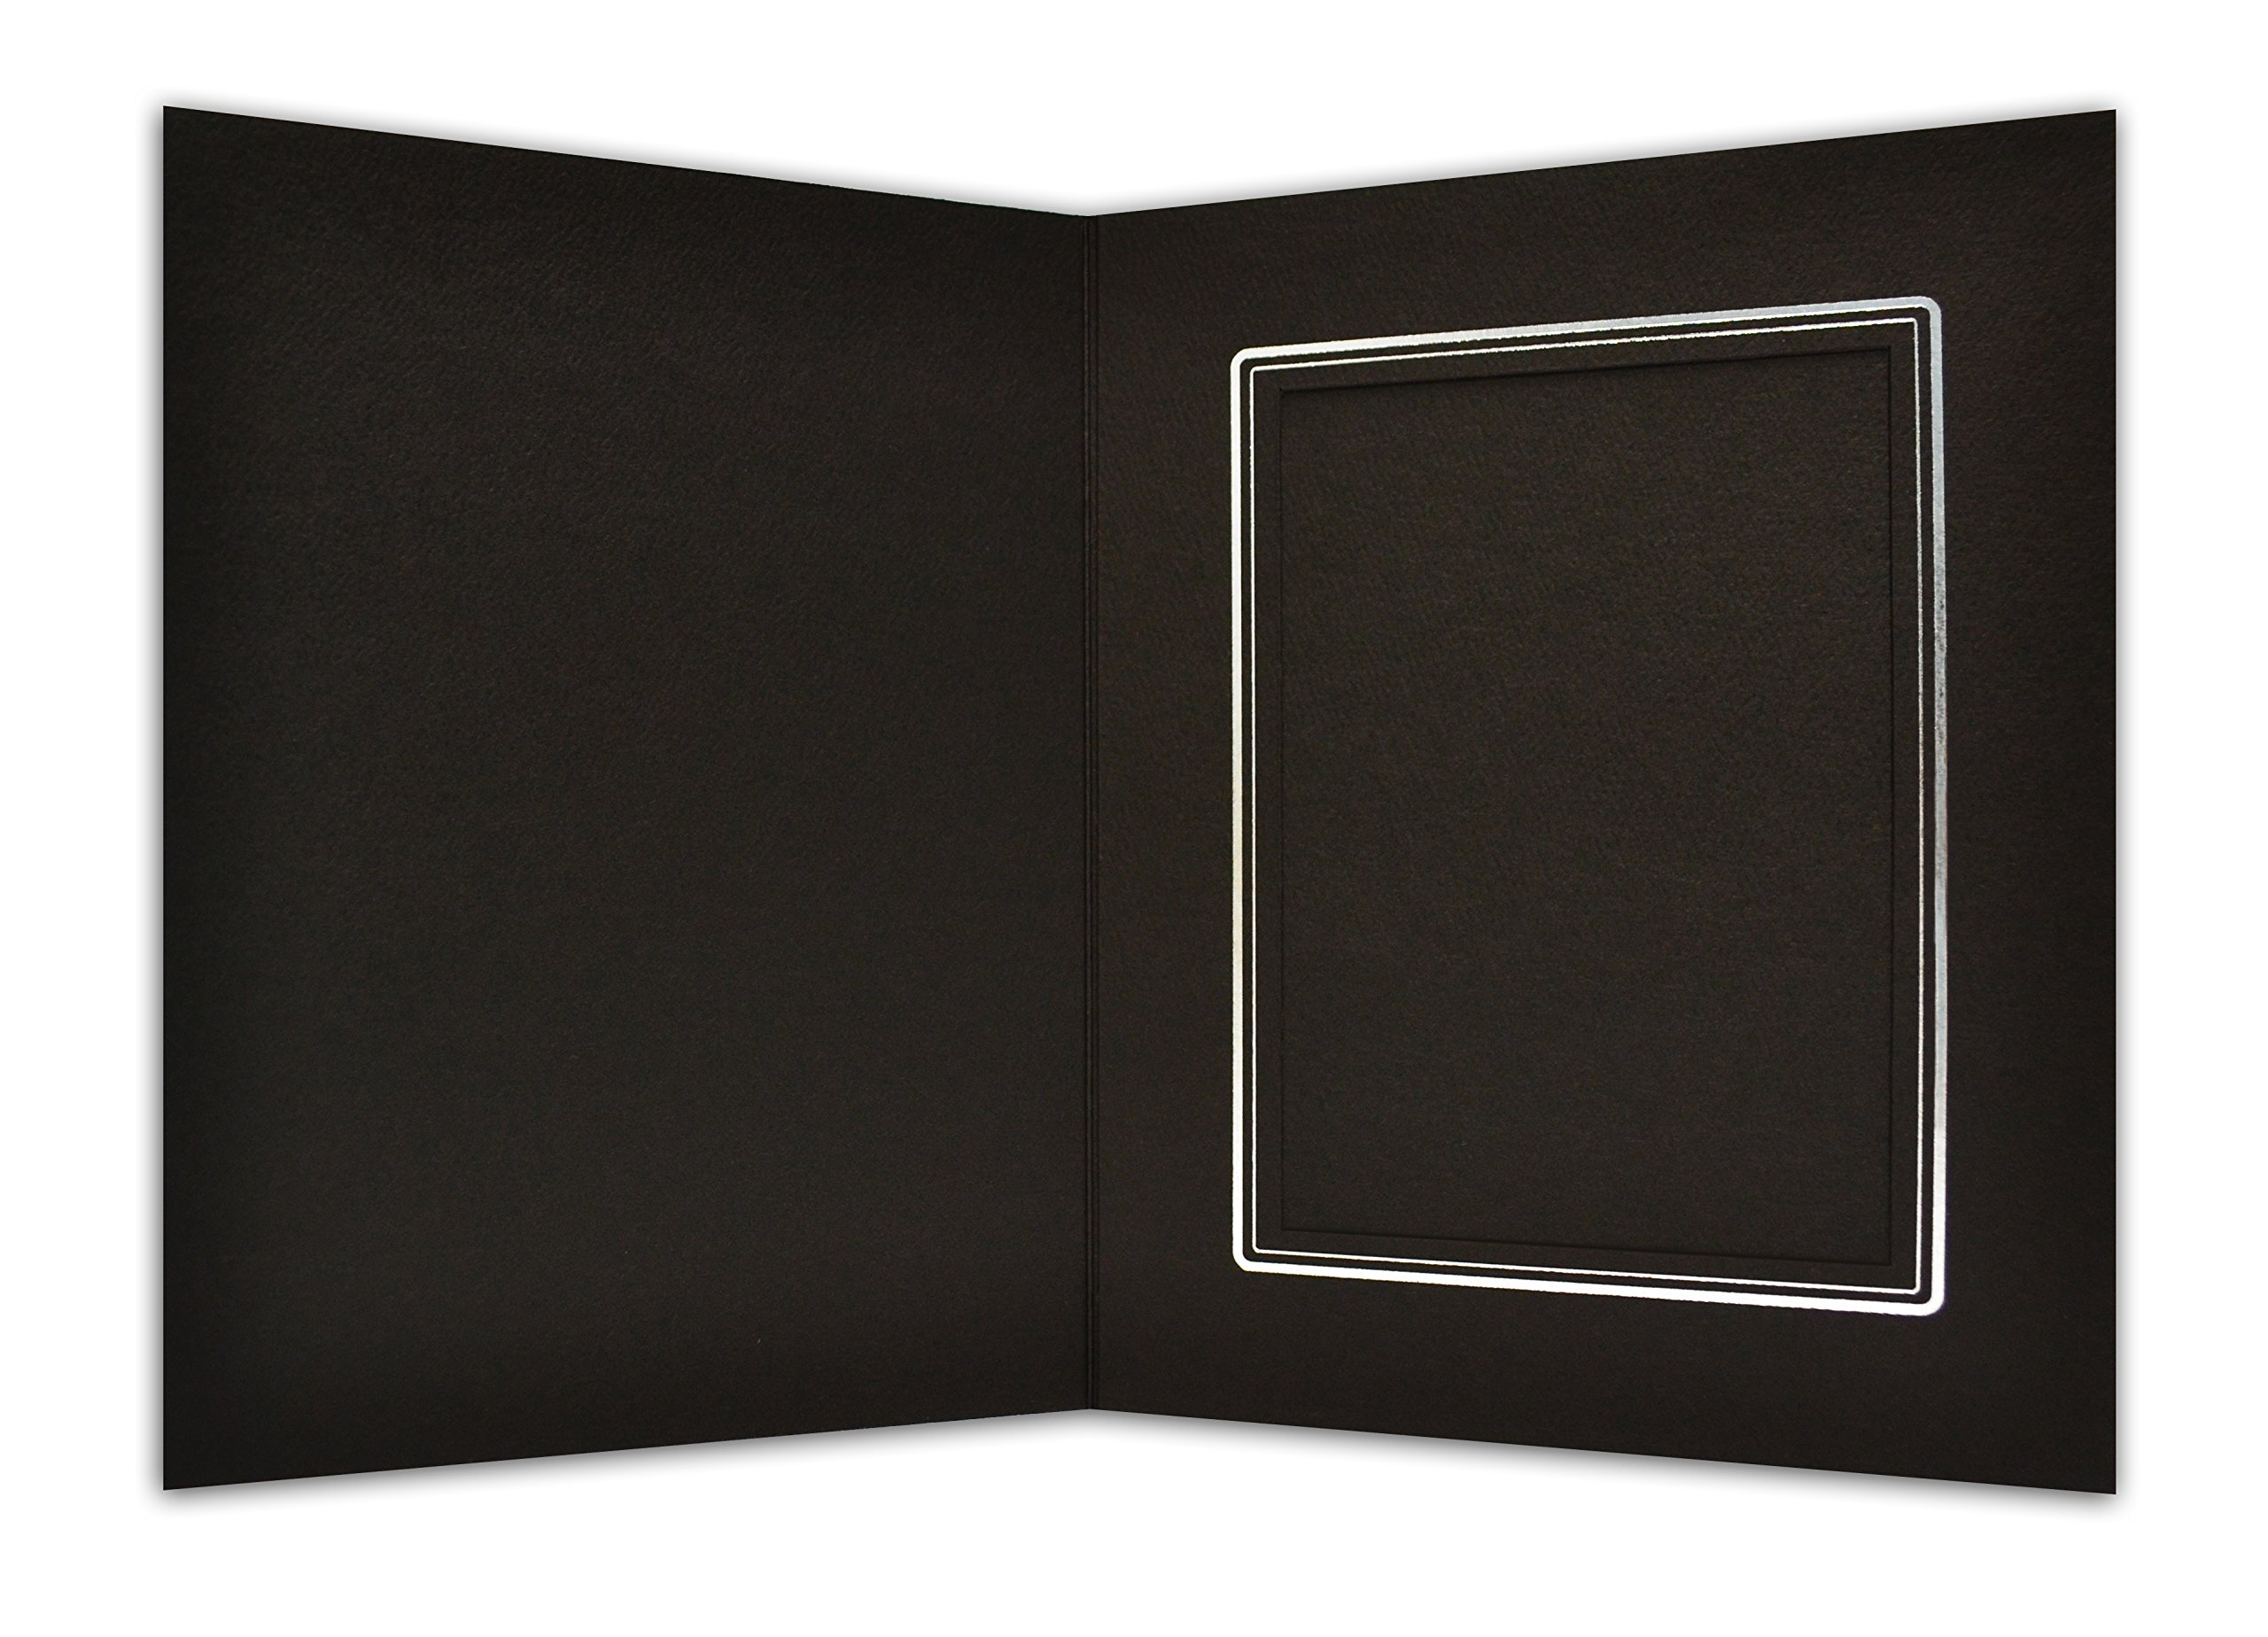 Golden State Art, Cardboard Photo Folder for a 4x6 Photo (Pack of 100) Black Color by Golden State Art (Image #2)